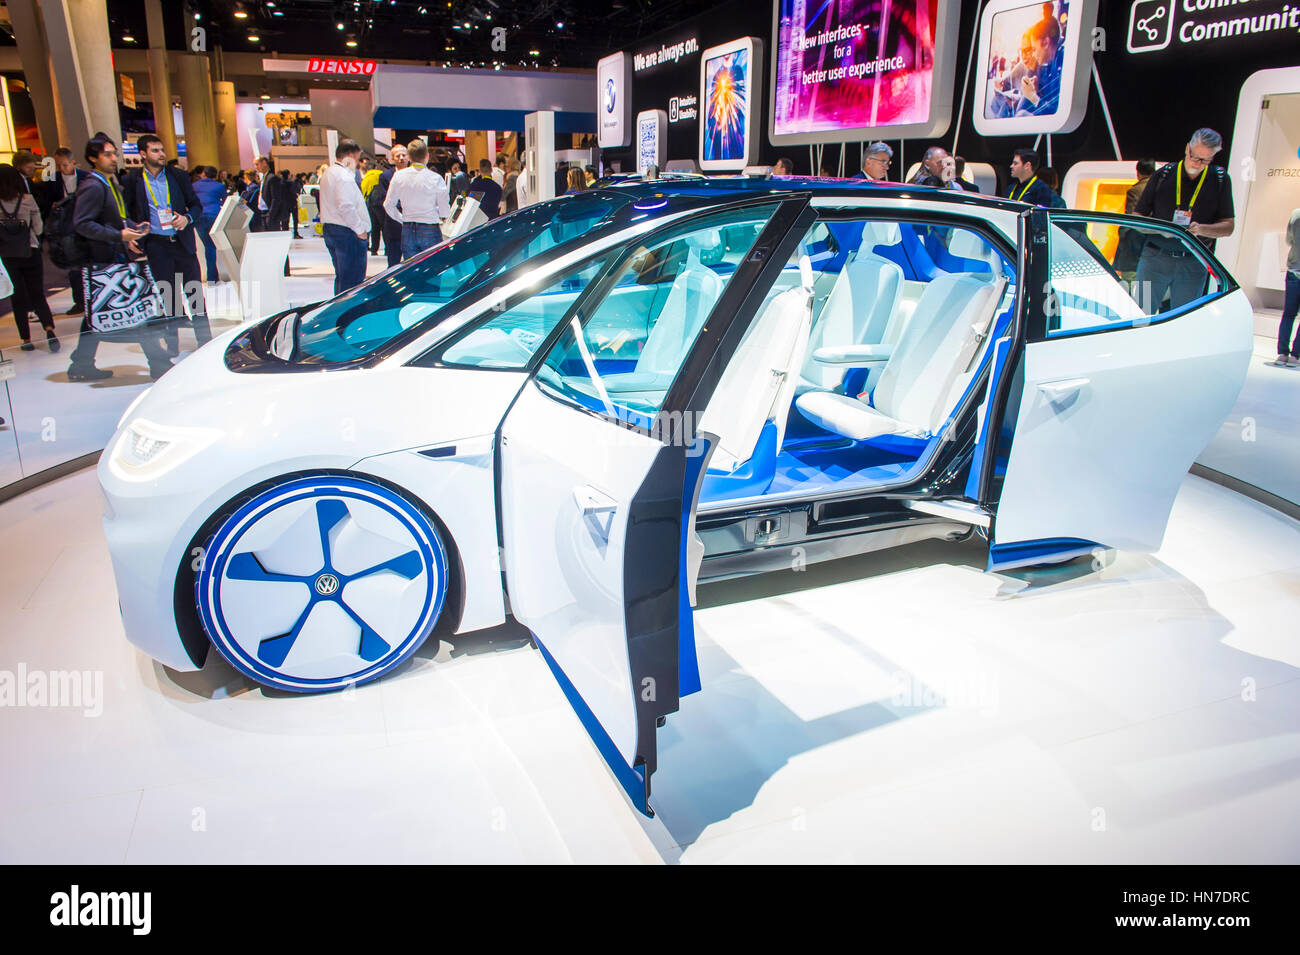 Volkswagen Booth Ces Show In Stock Photos Volkswagen Booth Ces - Vw car show las vegas